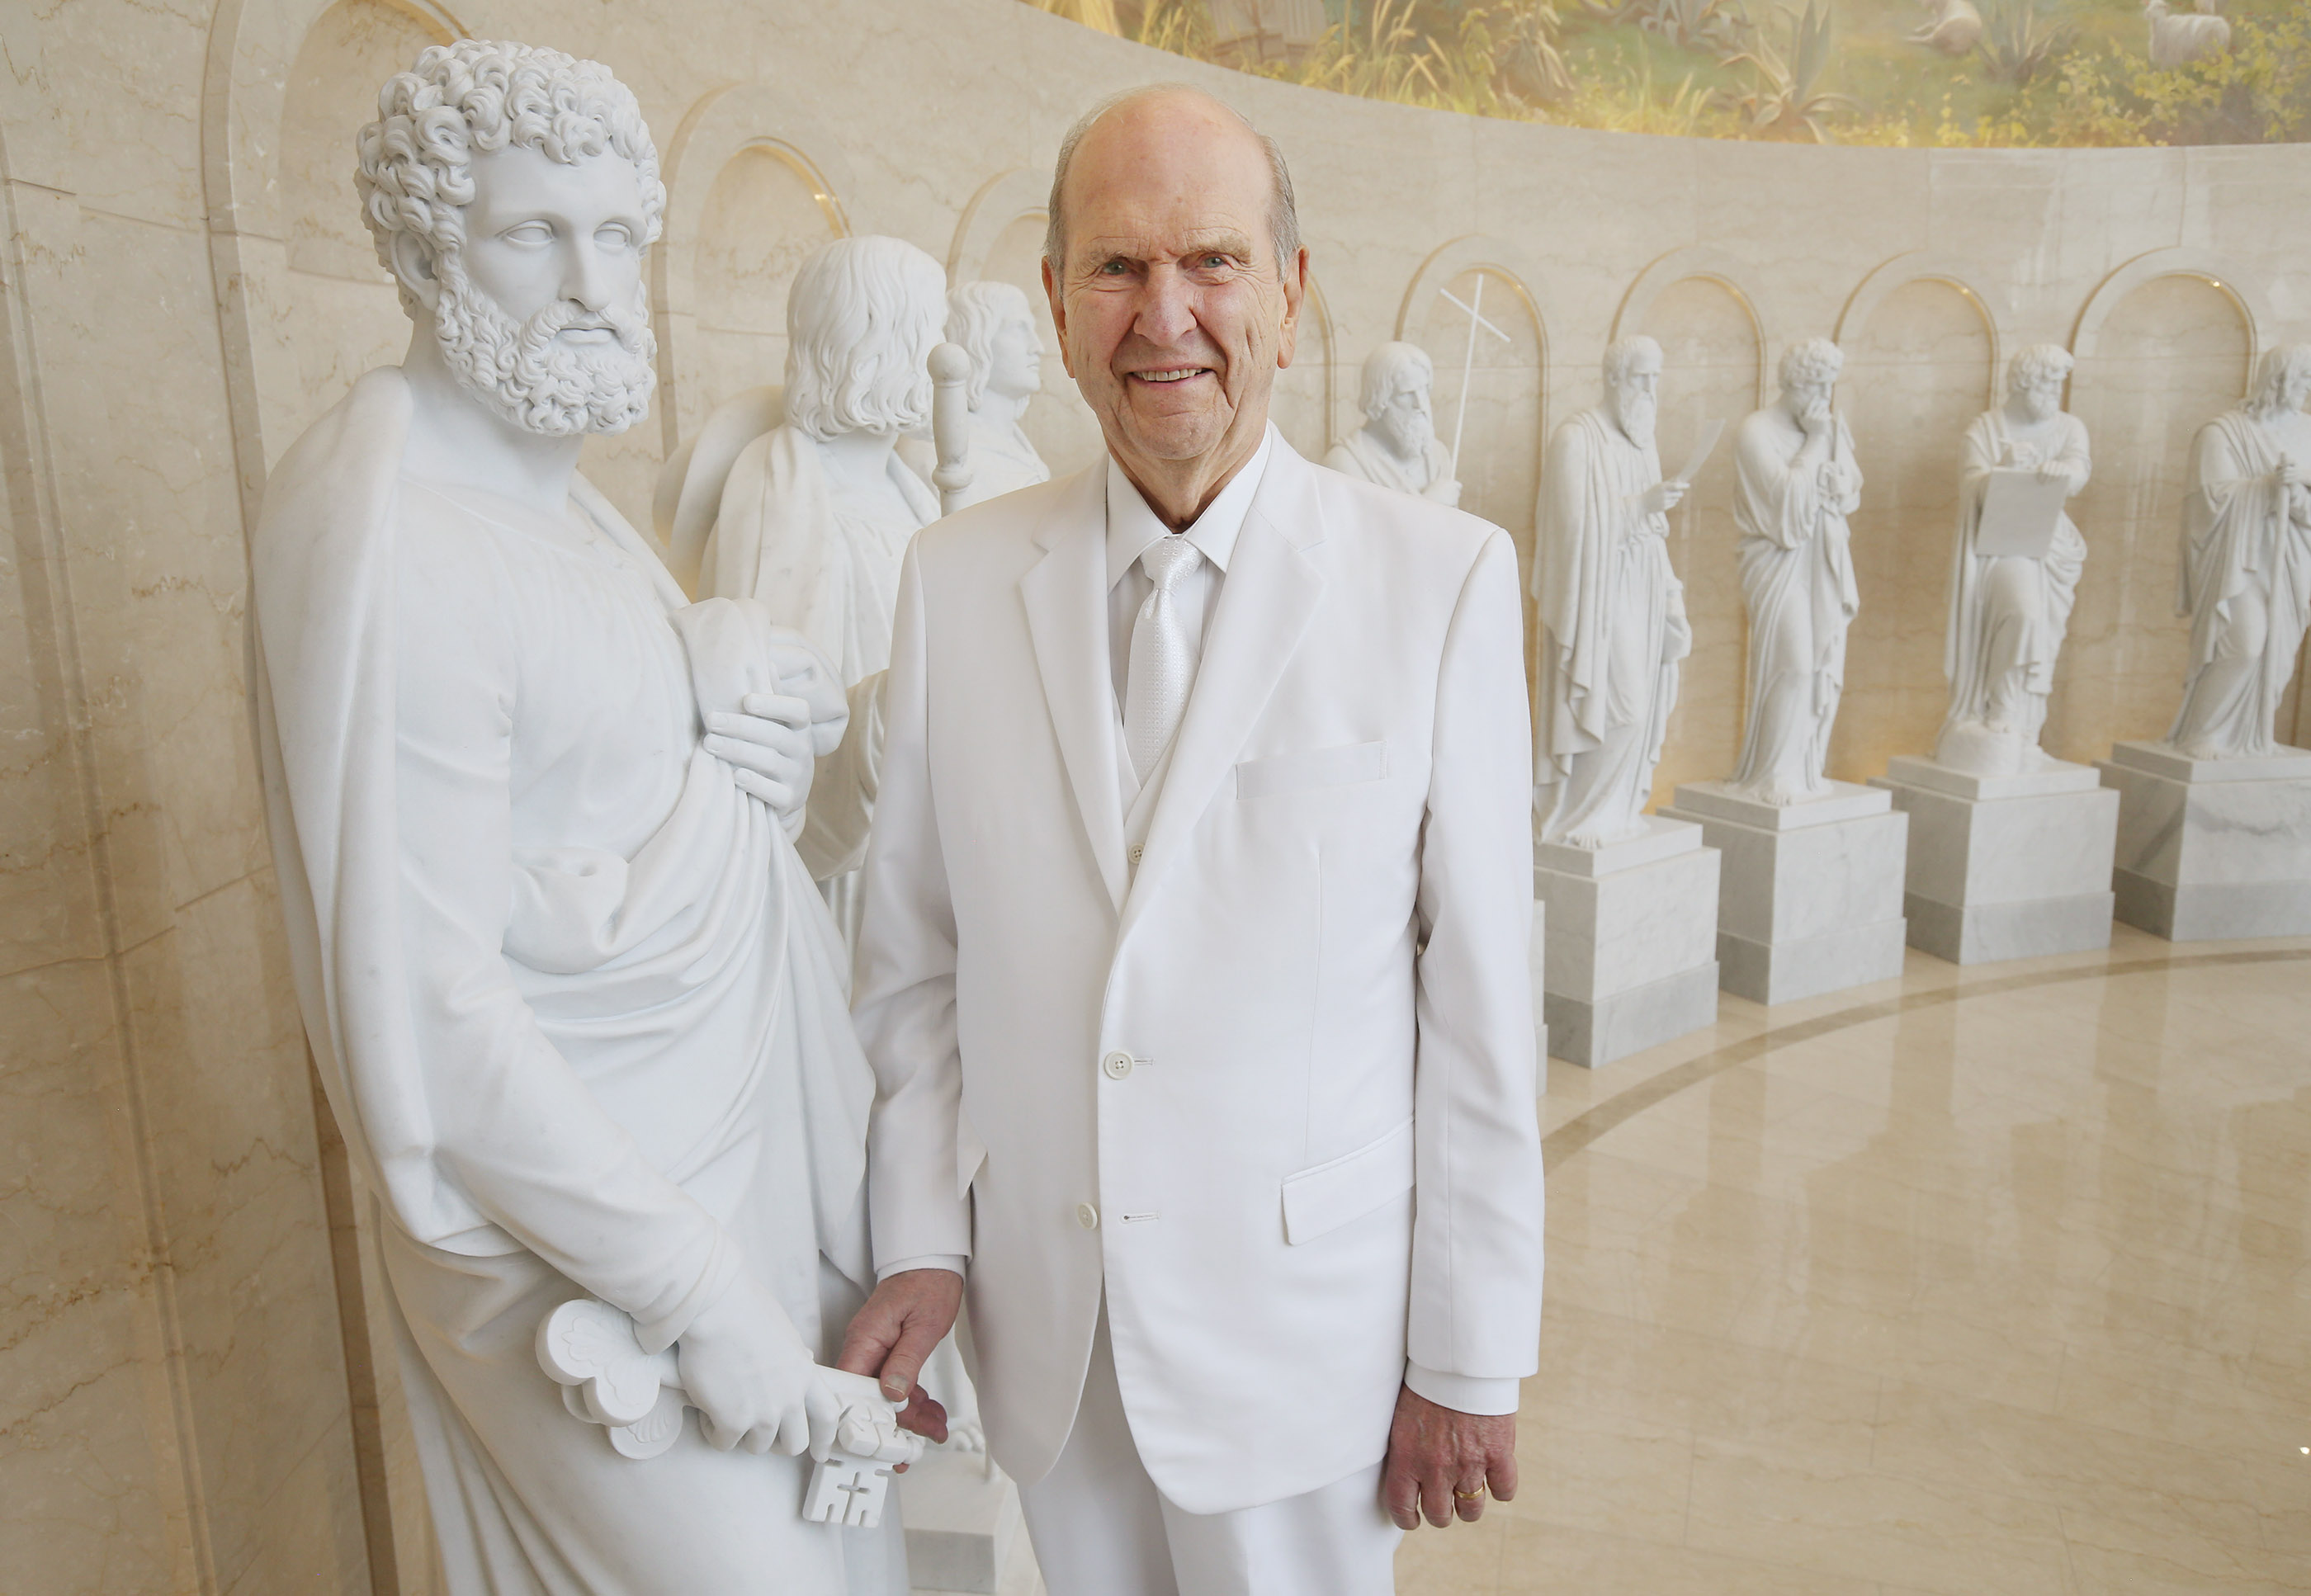 "Dressed in white temple clothing, President Russell M. Nelson stands in the Rome Italy Temple Visitors' Center next to a statue of Peter, by sculptor Bertel Thorvaldsen, in Rome, Italy, on Monday, March 11, 2019. The keys held in Peter's right hand are symbolic of Matthew 16:19, where Christ promises Peter, ""I will give unto thee the keys of the kingdom of heaven: and whatsoever thou shalt bind on earth shall be bound in heaven: and whatsoever thou shalt loose on earth shall be loosed in heaven."""